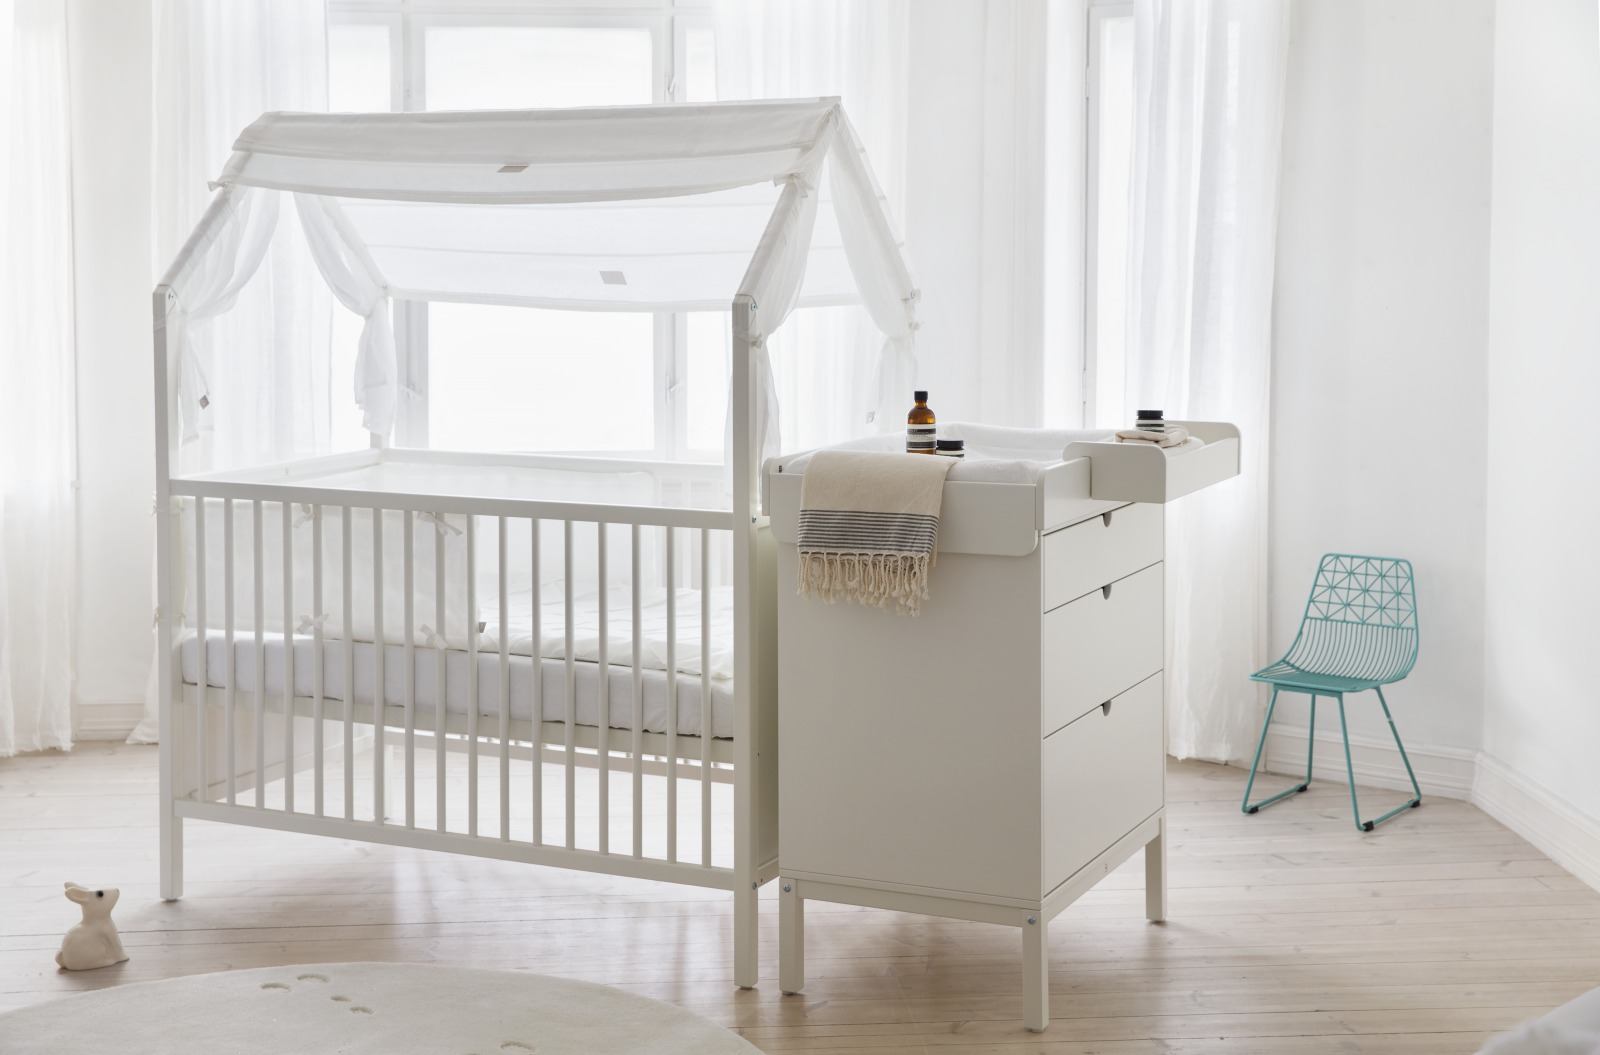 Stokke® Home™ Bed with Roof textiles, Stokke® Half Bumper and Stokke® Home™ Dresser with Changer on top.